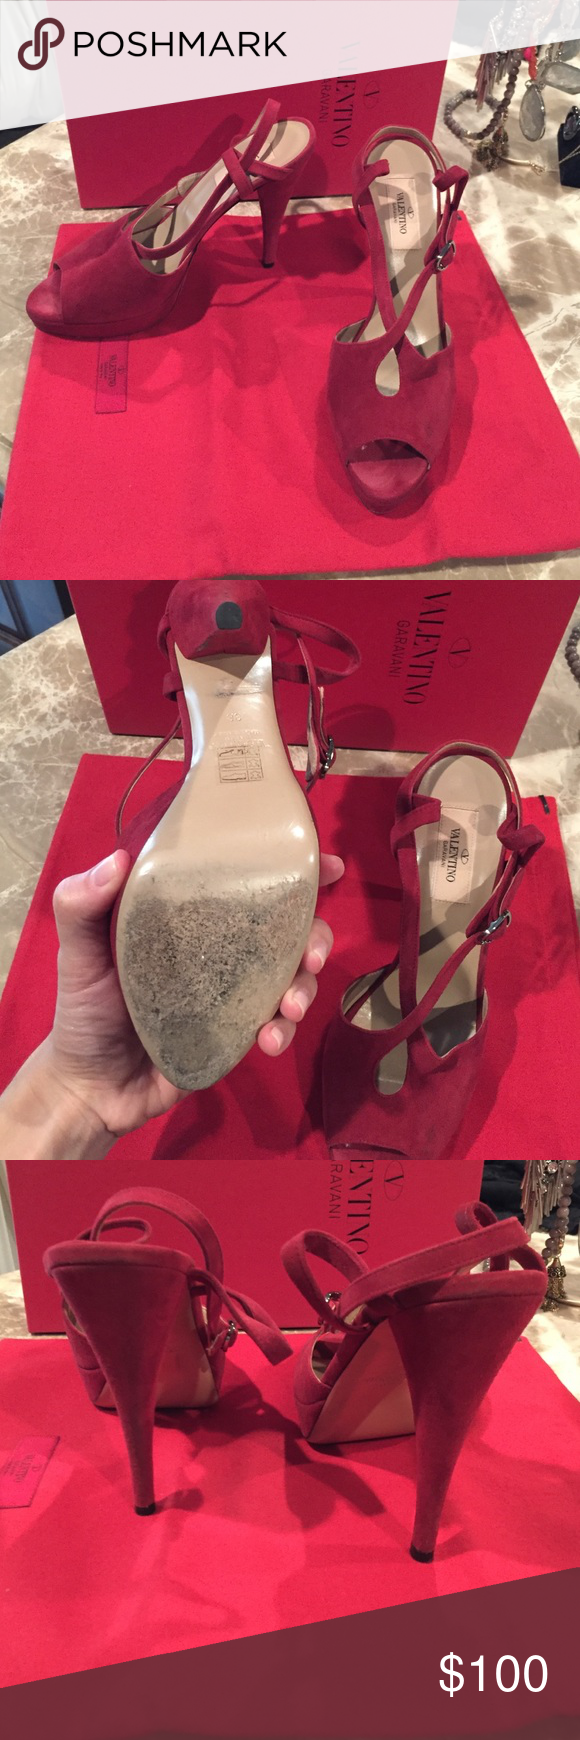 Valentino red suede heels Valentino red suede peep toe heels. Worn handful of times so they have your normal wear and tear. Comes with original dust bag and box. Size 38 (8). Bought for $695. Selling for $100 Valentino Shoes Heels